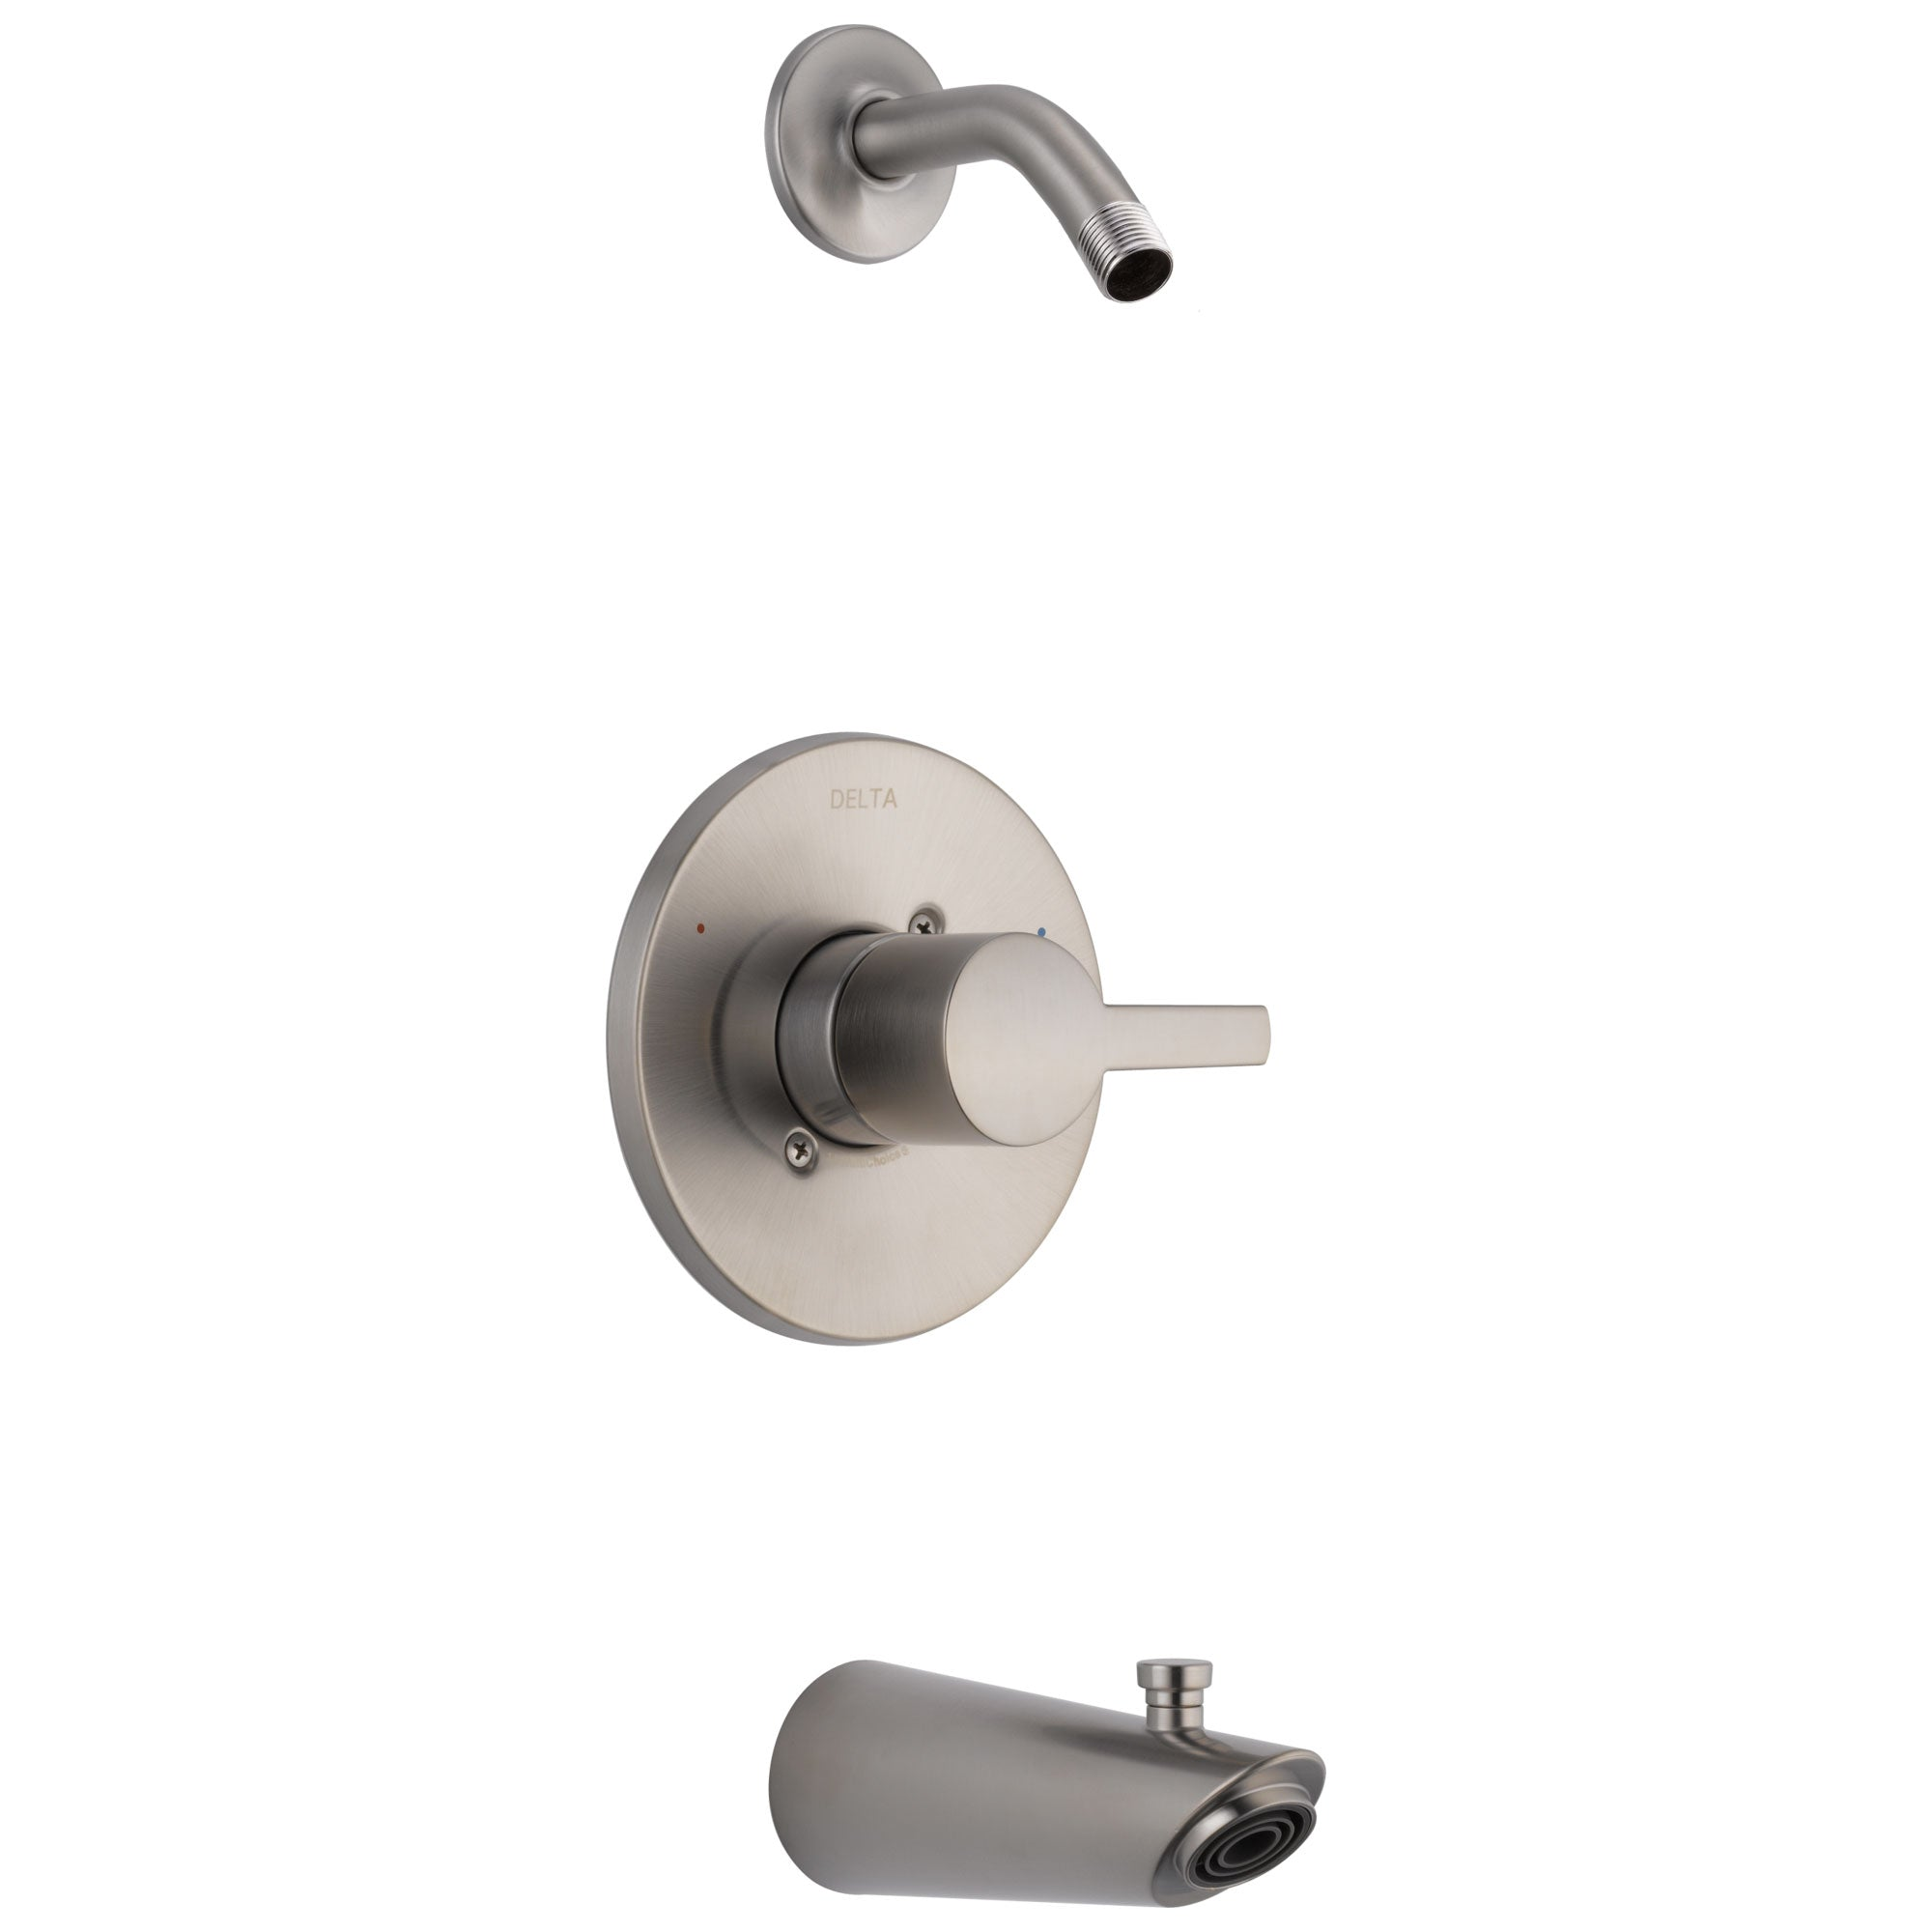 Delta Compel Collection Stainless Steel Finish Monitor 14 Modern Tub & Shower Combination Faucet Trim - Less Showerhead (Requires Valve) DT14461SSLHD